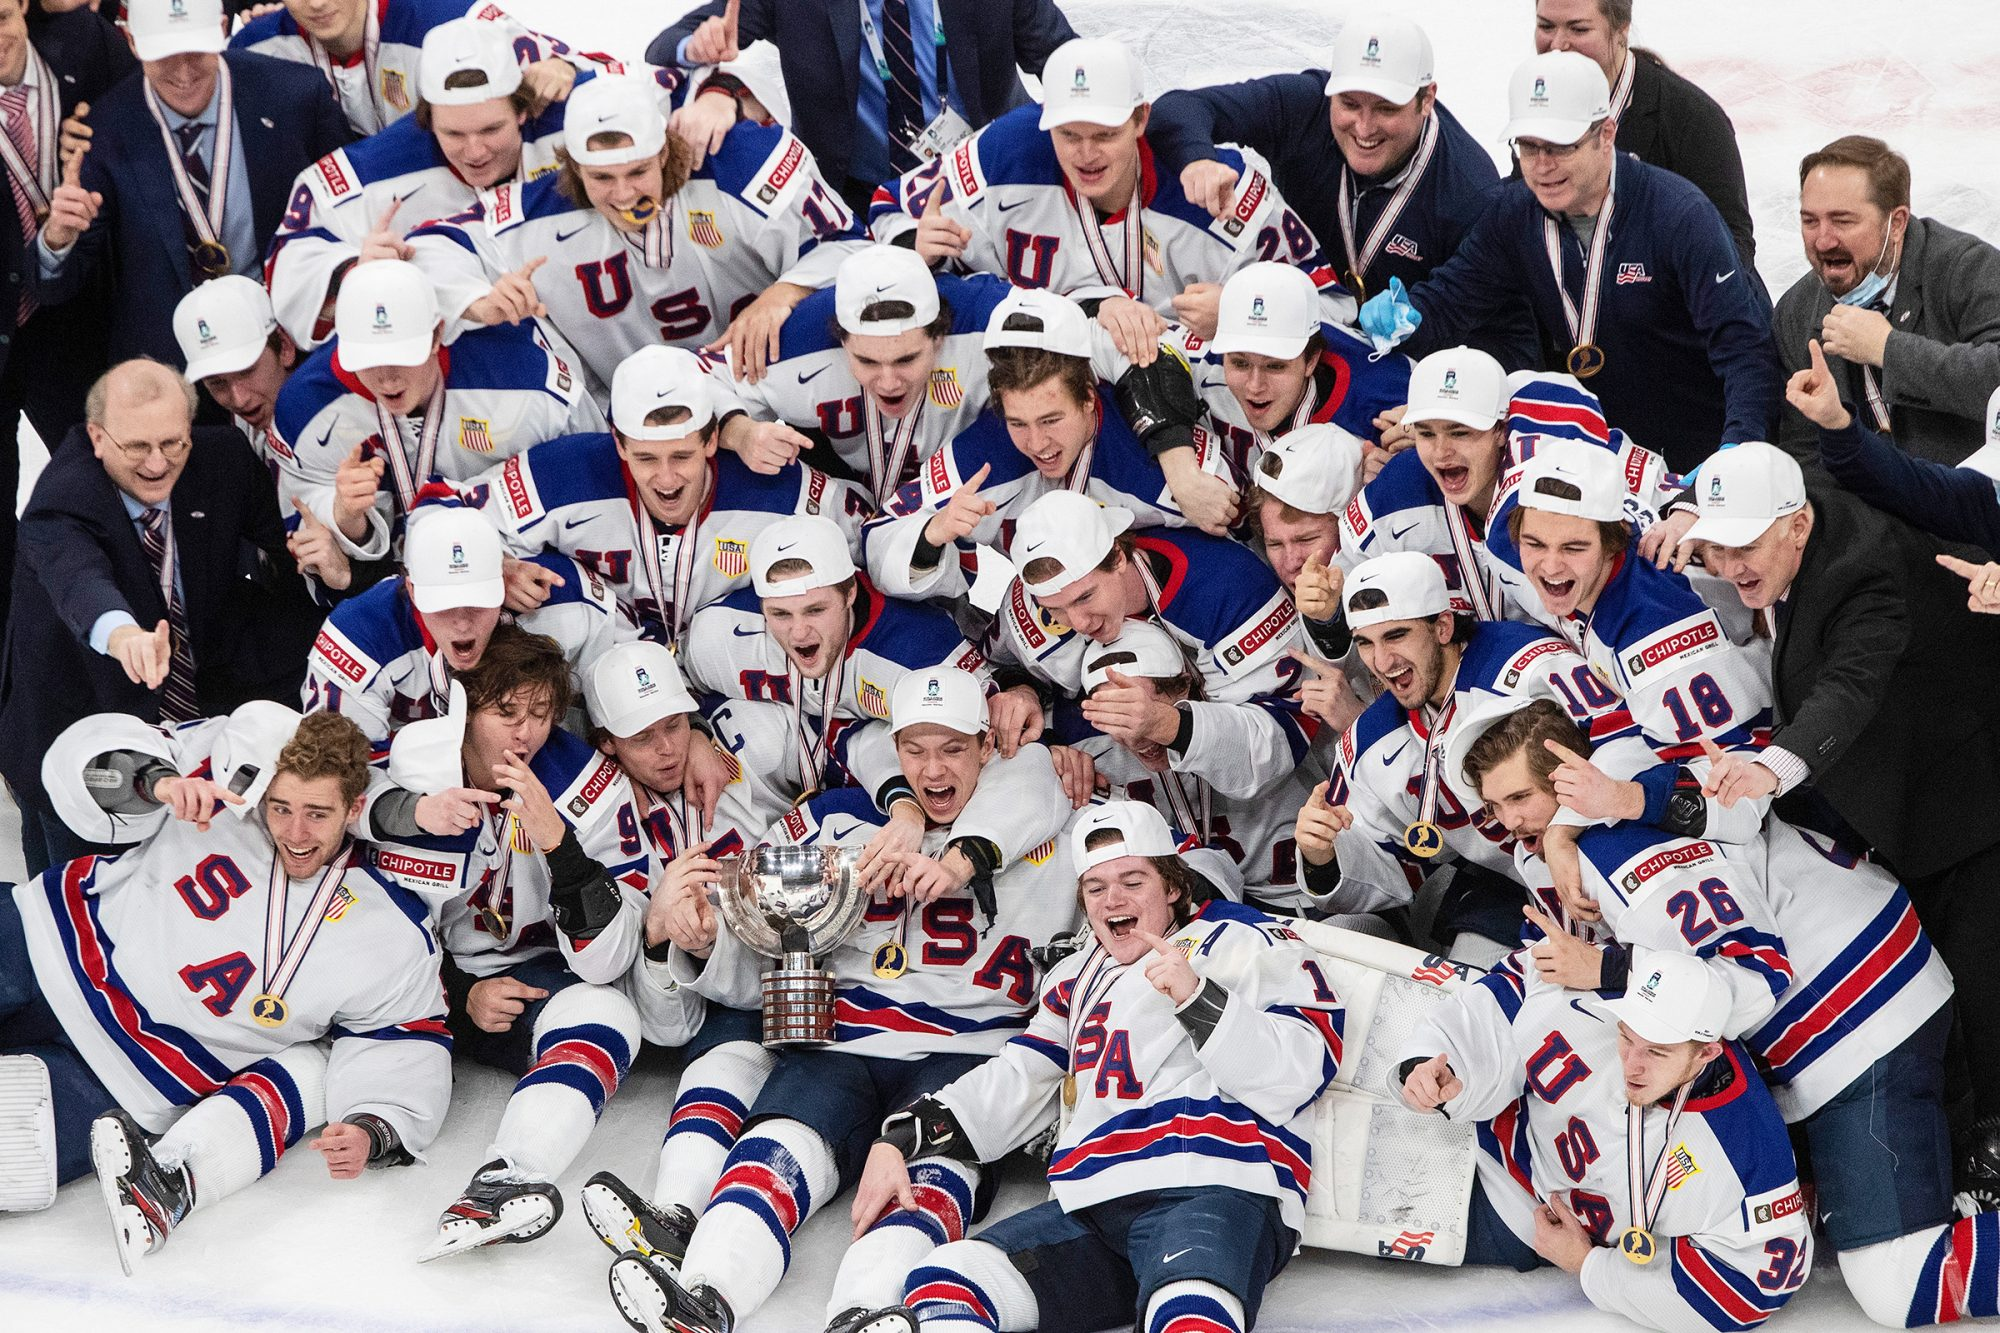 The U.S. team celebrates a win over Canada in the title game in the IIHF World Junior Hockey Championship, Tuesday, Jan. 5, 2021, in Edmonton, Alberta